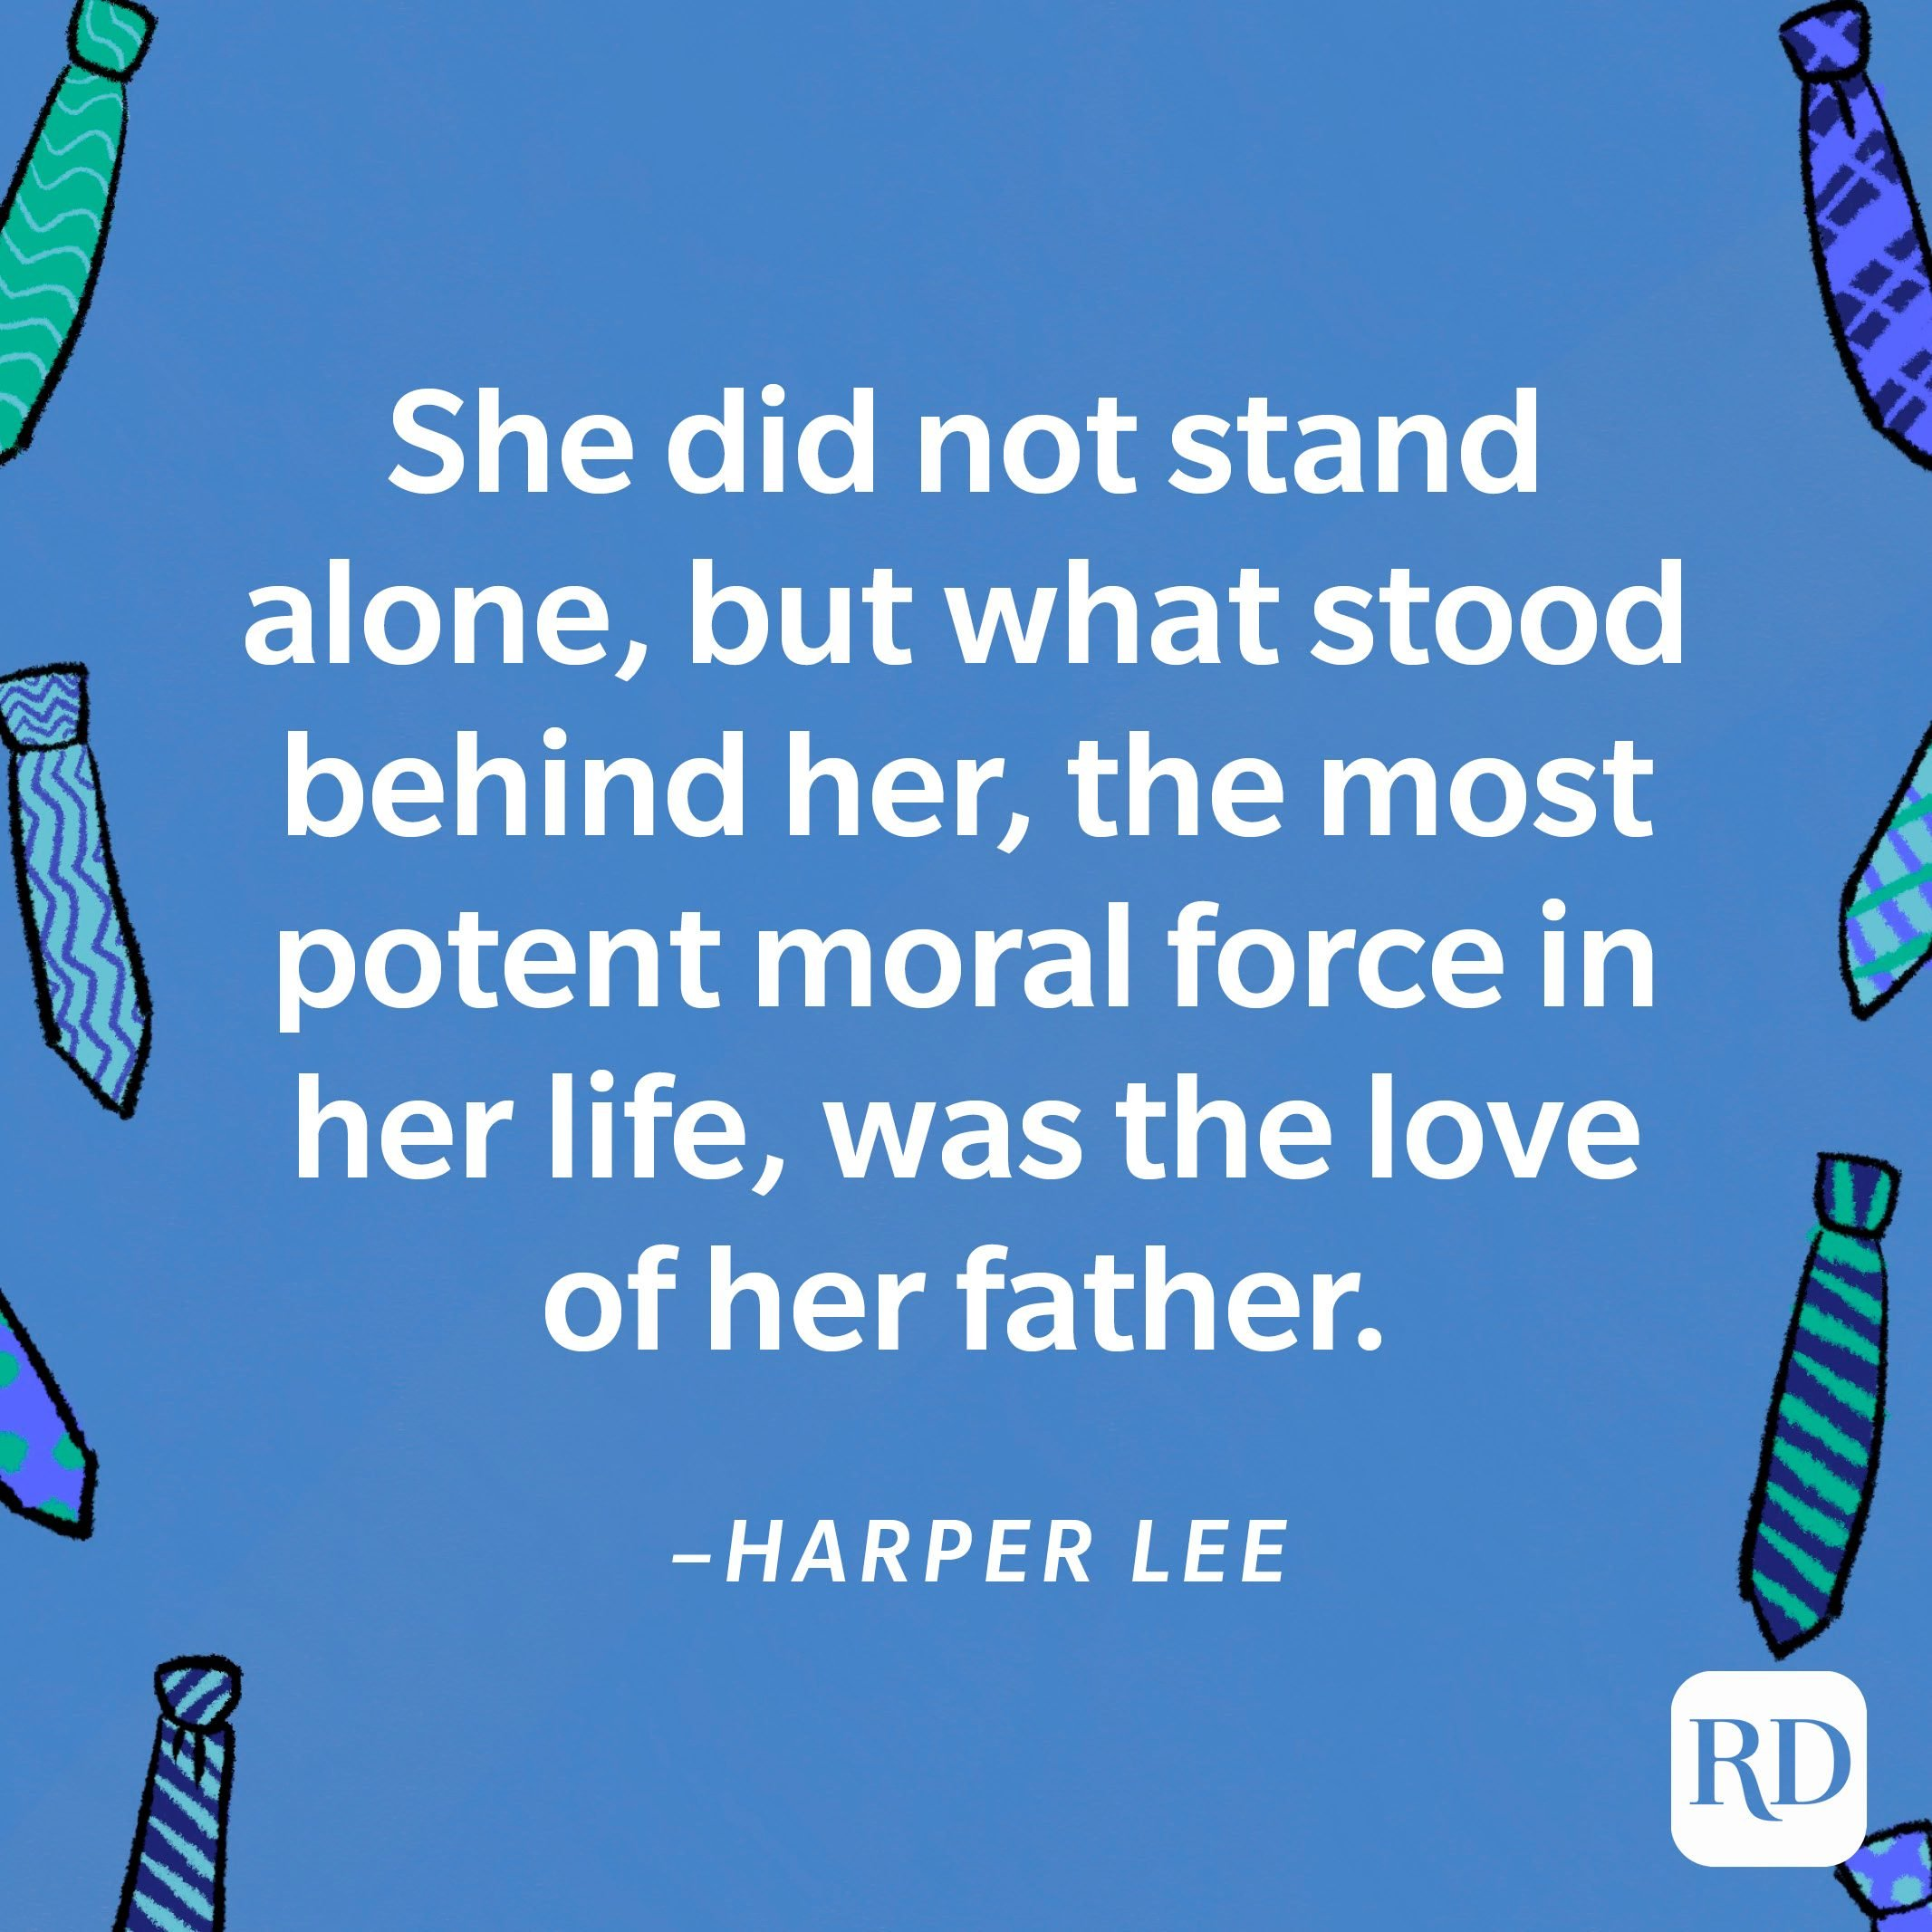 """""""She did not stand alone, but what stood behind her, the most potent moral force in her life, was the love of her father.""""—Harper Lee 11"""